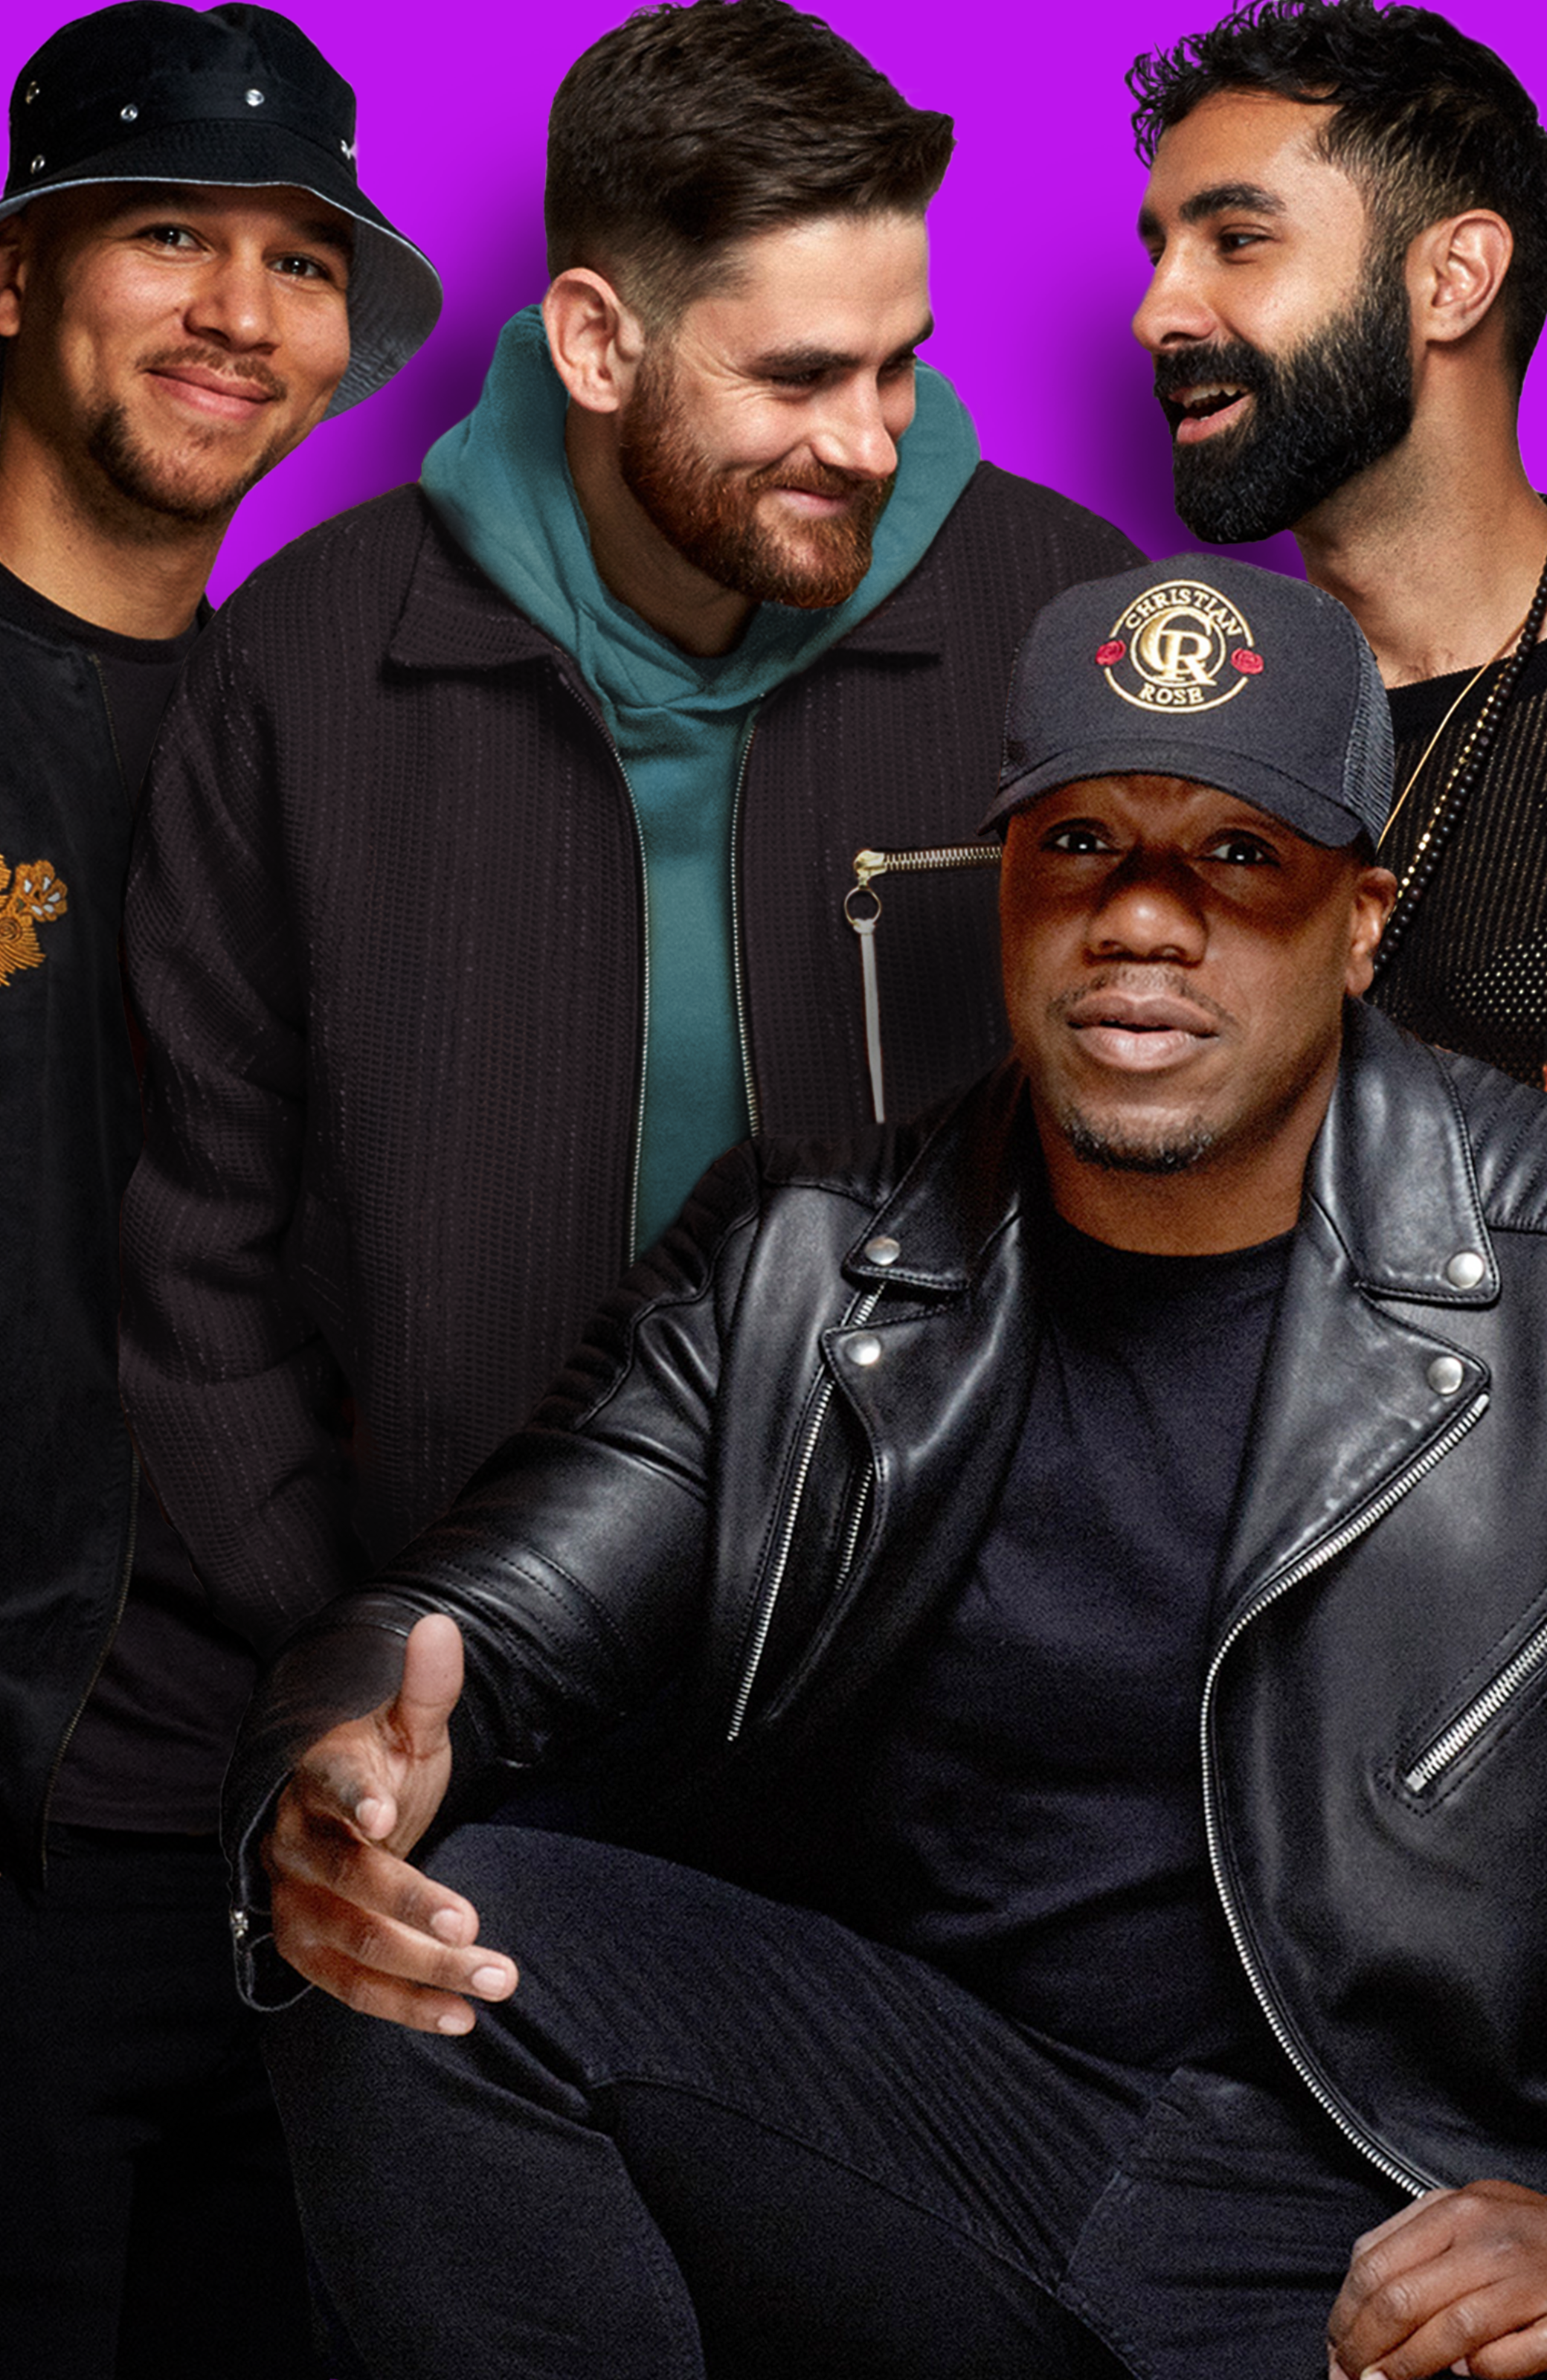 Rudimental portrait soundpack image